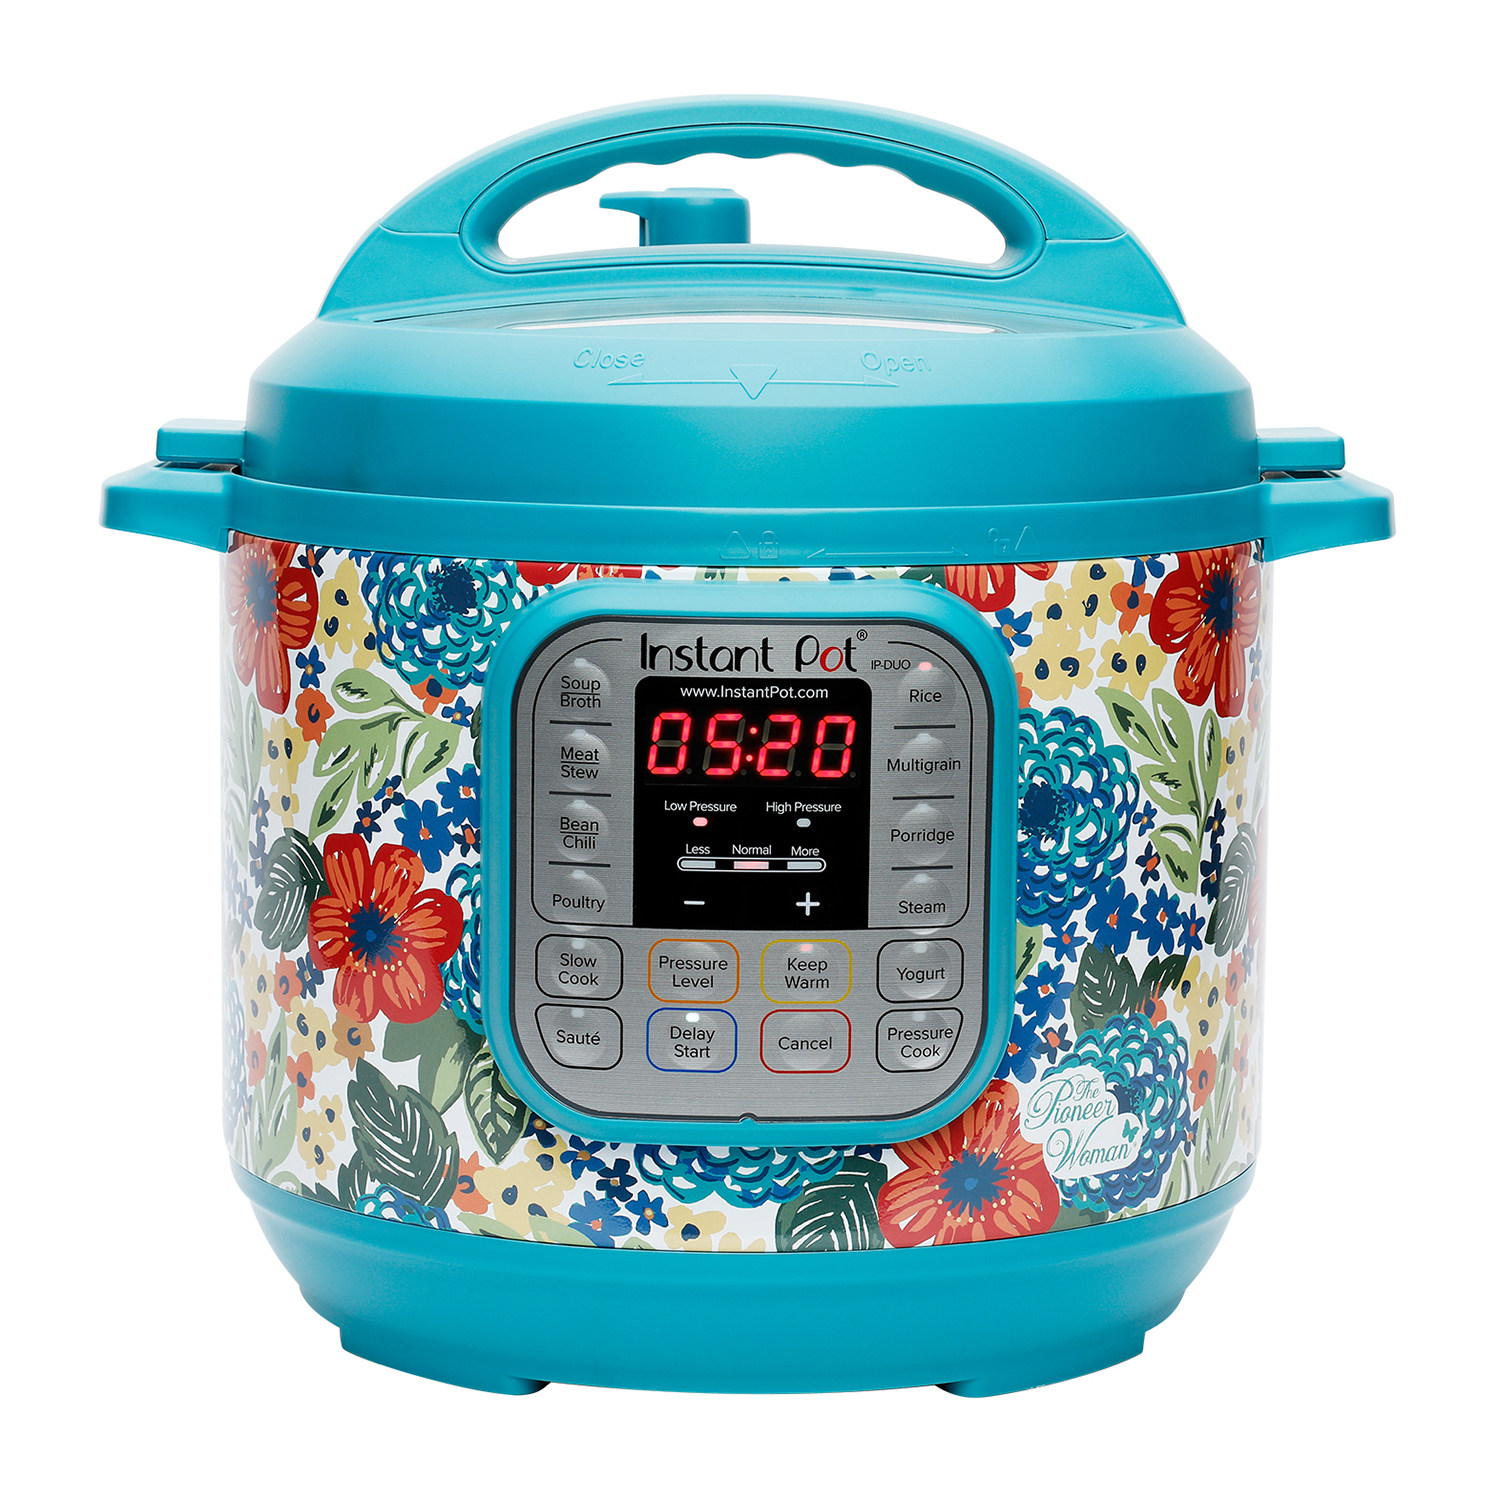 The Pioneer Woman Instant Pot DUO60 7-in-1 Dazzling Dahlia 6-Quart Programable Multi-Cooker